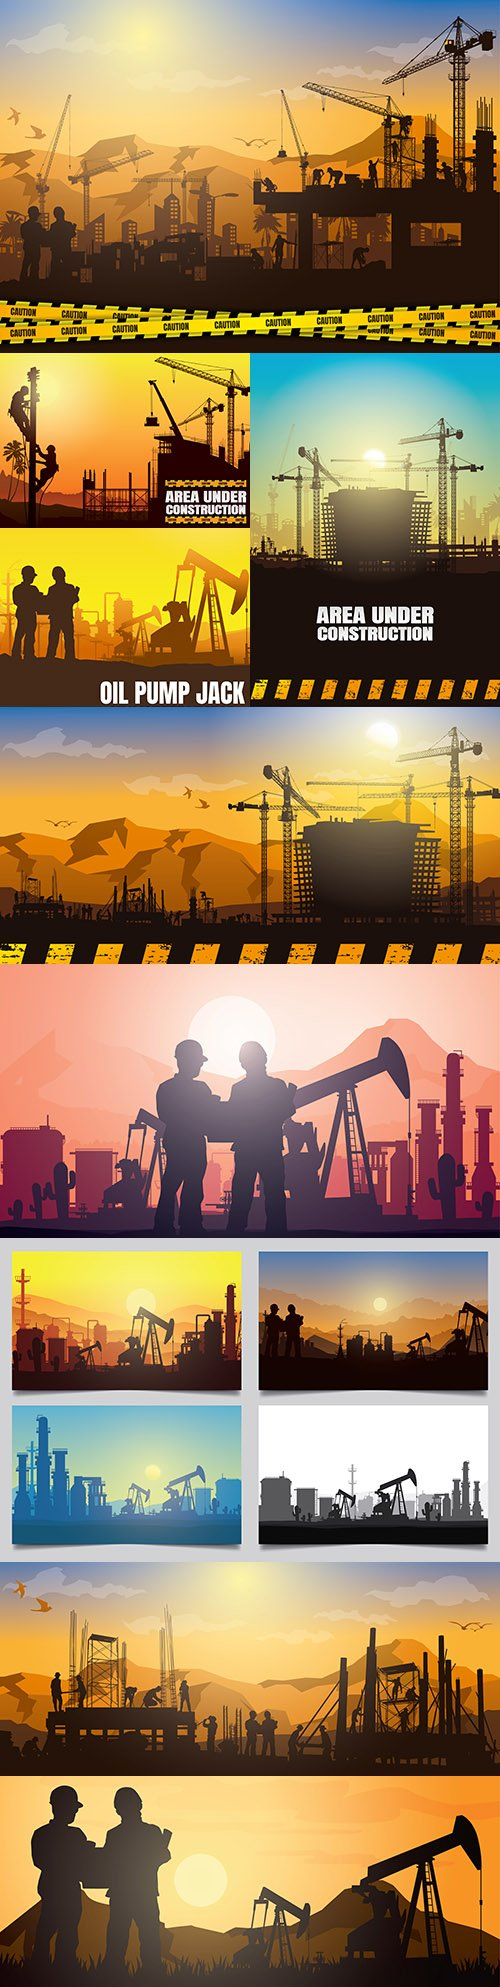 Oil rig and industry silhouettes background illustration